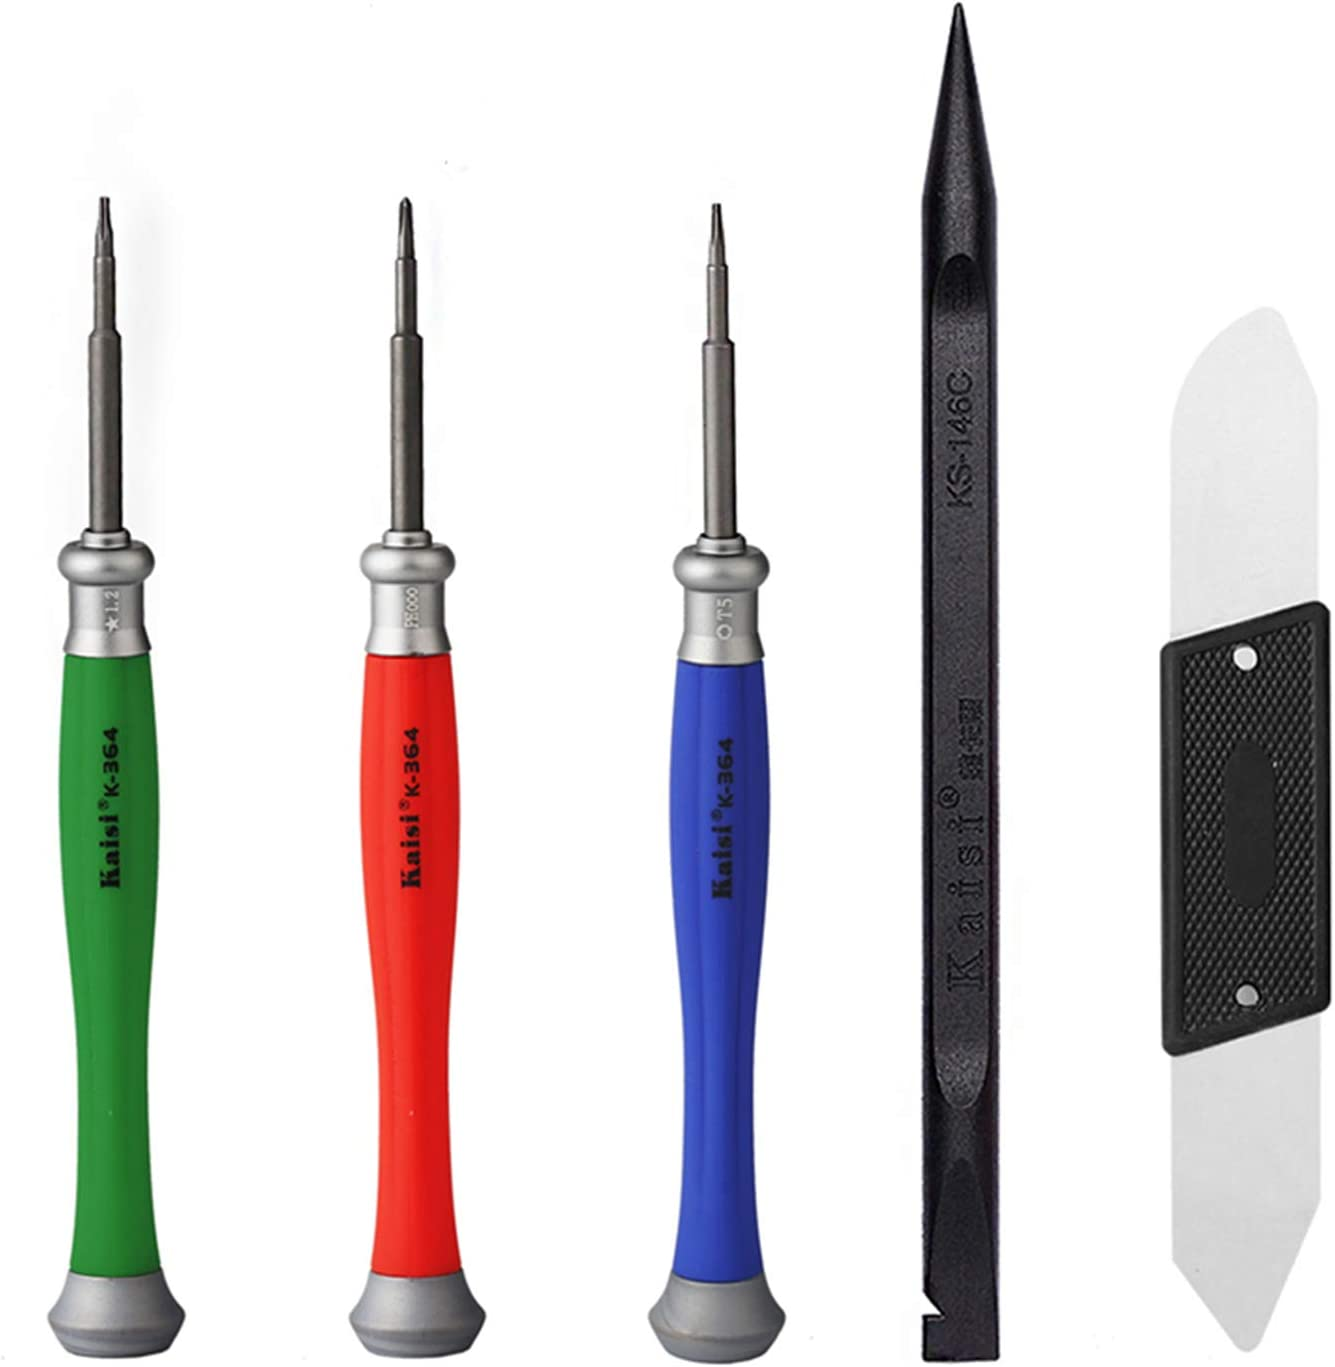 Kaisi 5pcs MacBook Repair Tool Kit Precision P5 Pentalobe Screwdriver, T5 Torx and PH000 Phillips Screwdriver with Ultra-Thin Steel and Nylon Spudgers for MacBook Pro & MacBook Air with Retina Display: Electronics